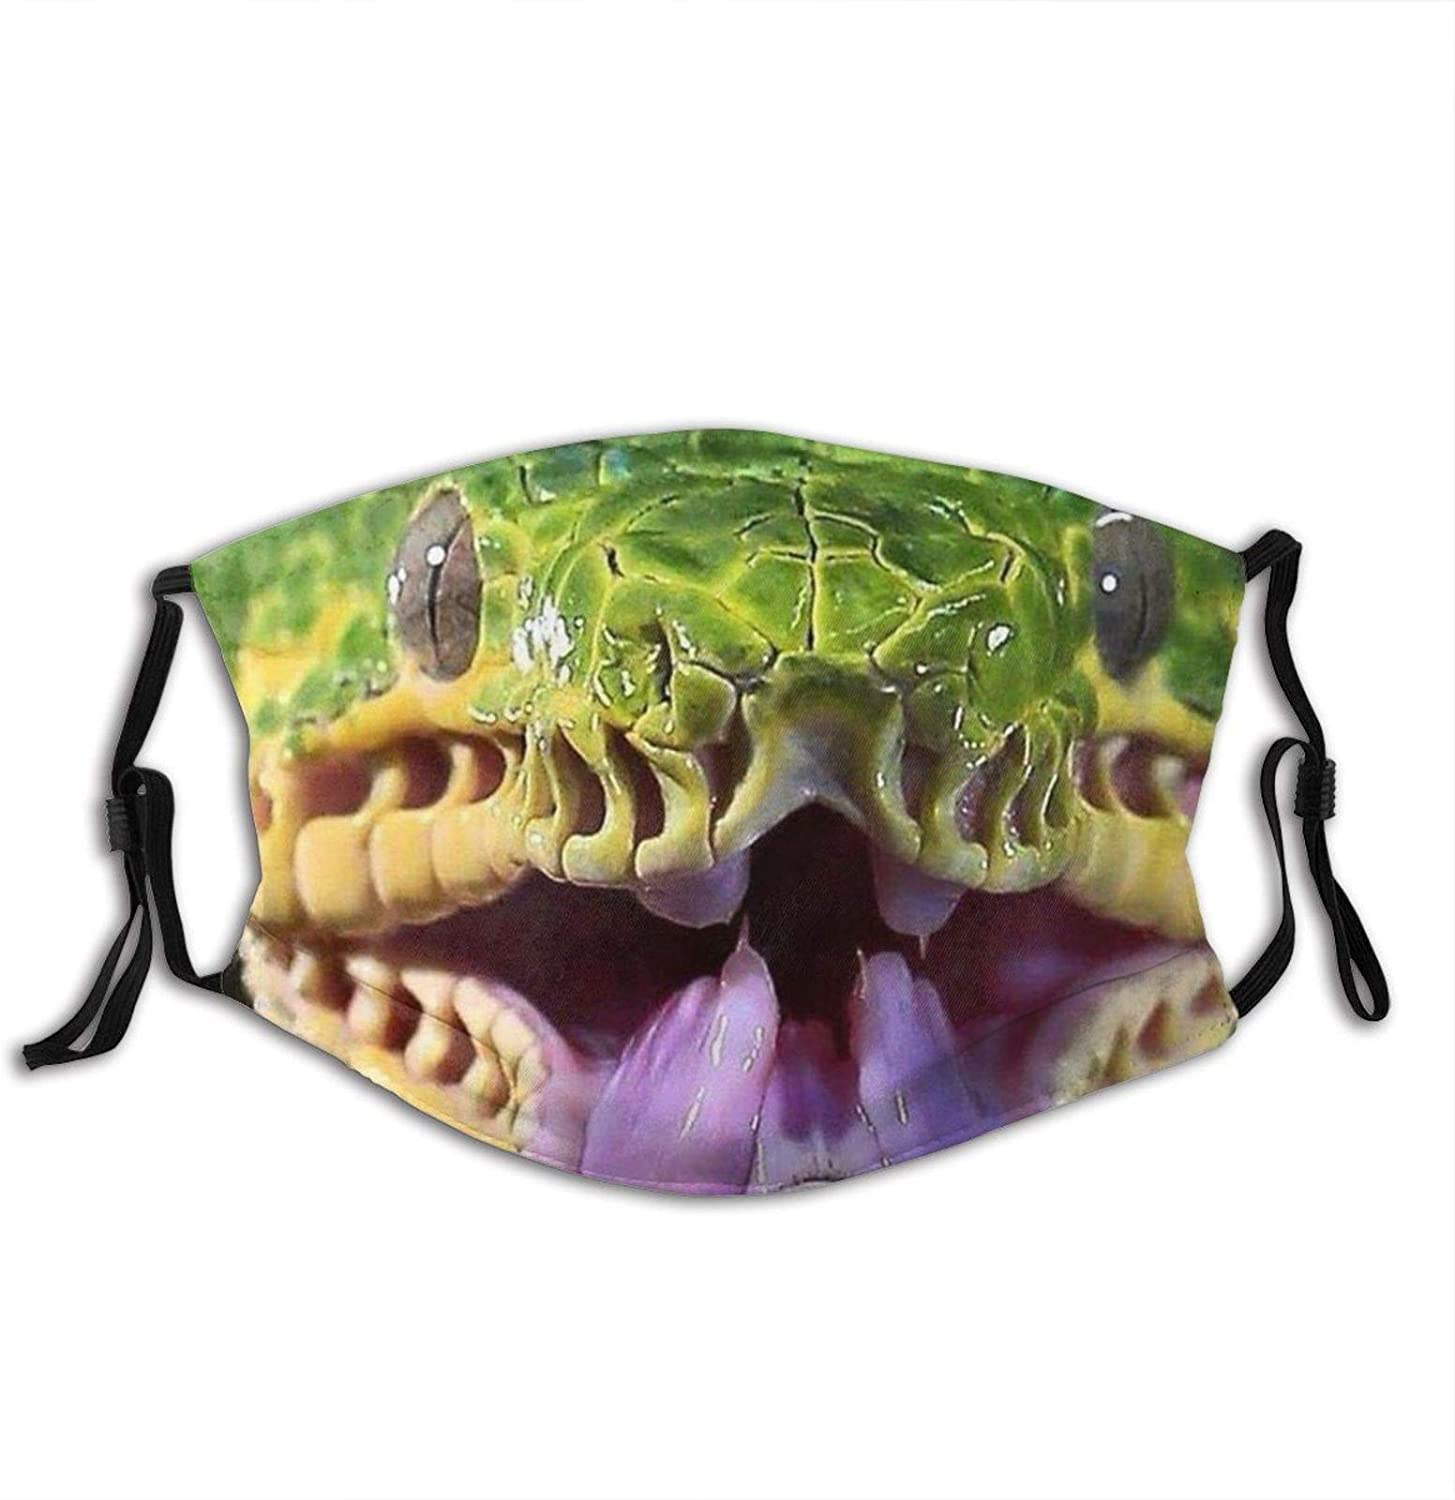 Scary Snake Animal Face Mask Washable Adjustable Balaclava Reusable Fashion Scarves For Unisex With 2 Pcs Filters